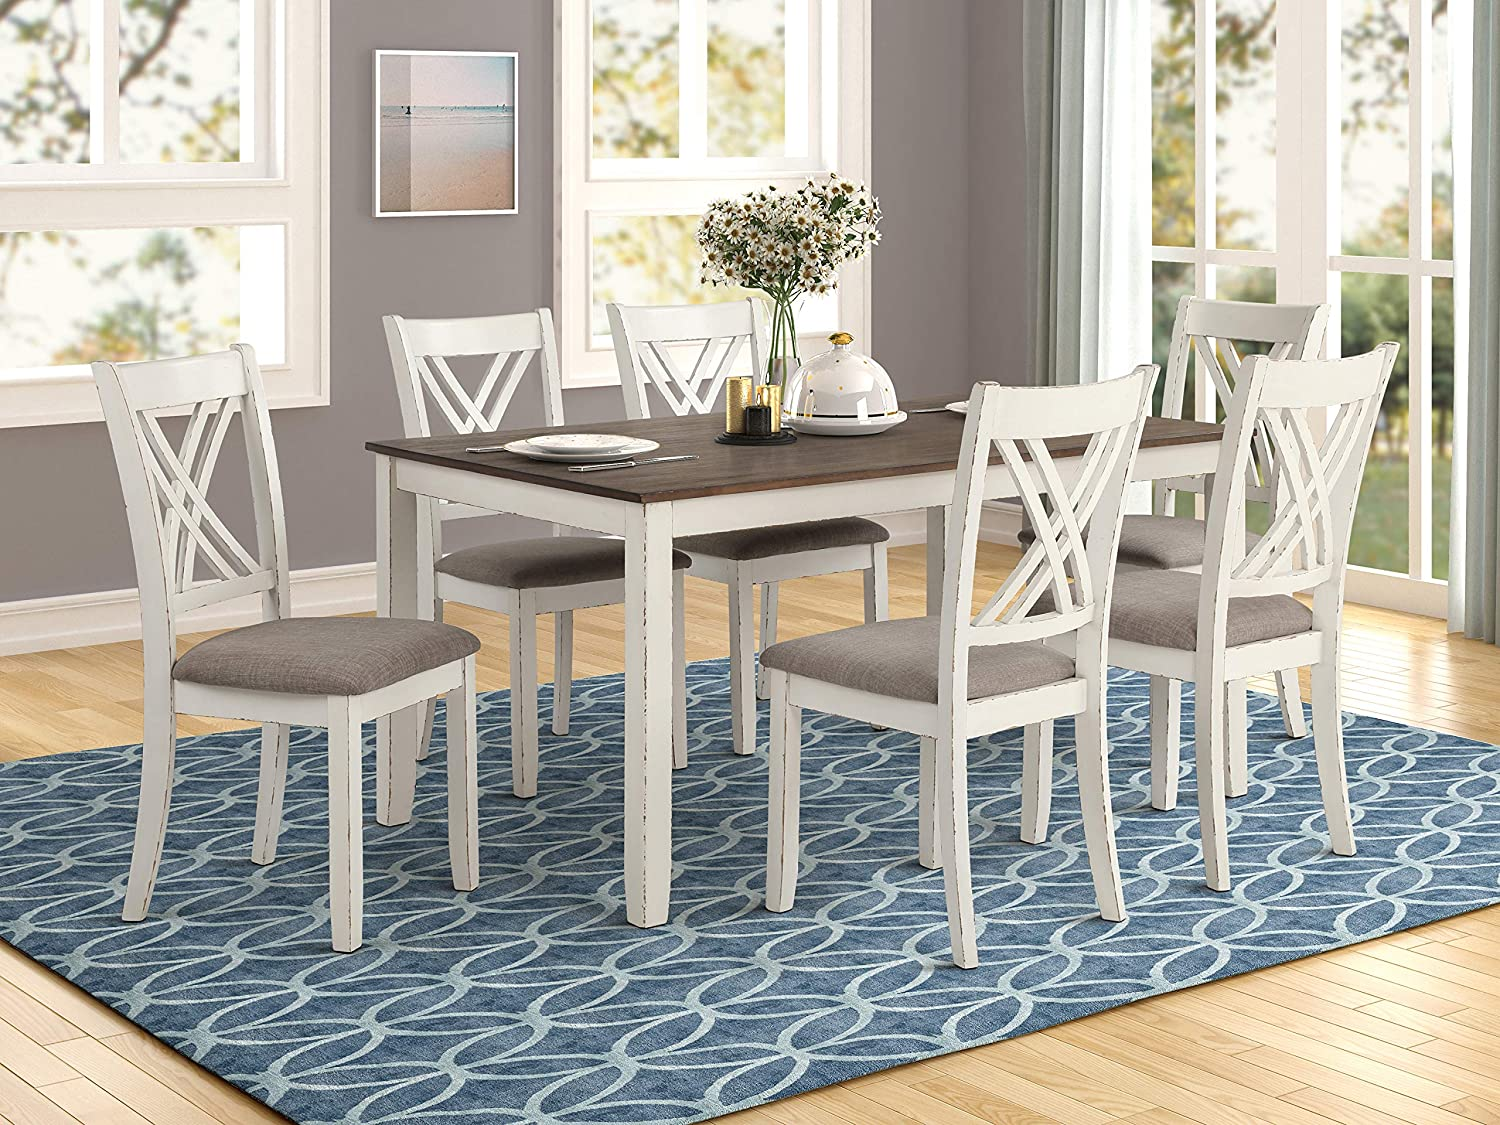 Coaster Home Furnishings Fortress 7-Piece Dining Set, Light Brown, Chestnut Vintage White